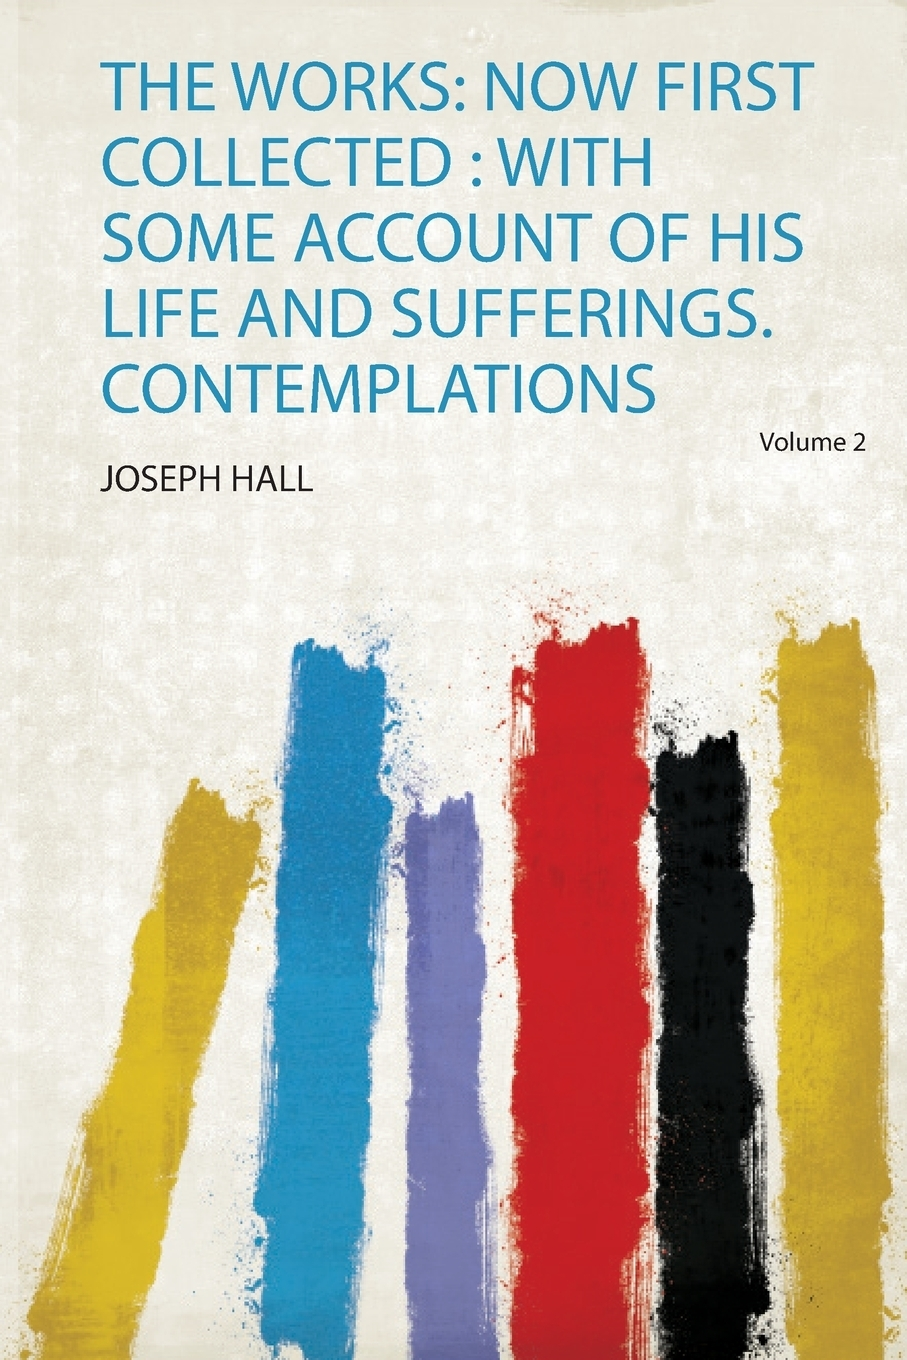 Joseph Hall. The Works. Now First Collected : With Some Account of His Life and Sufferings. Contemplations